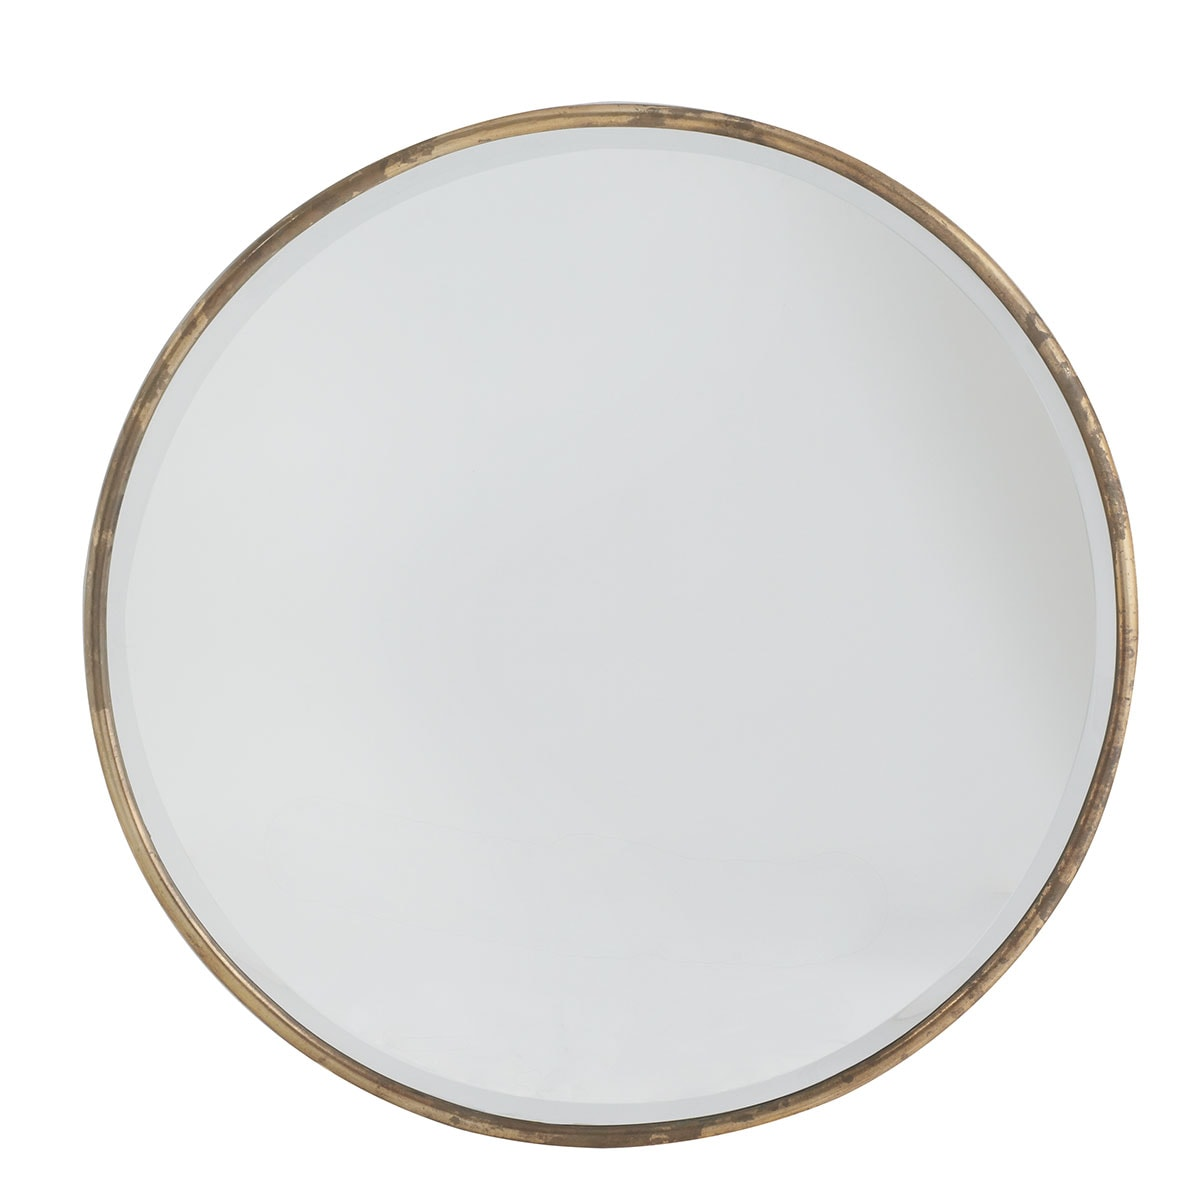 round gold toned mirror options for the dining room